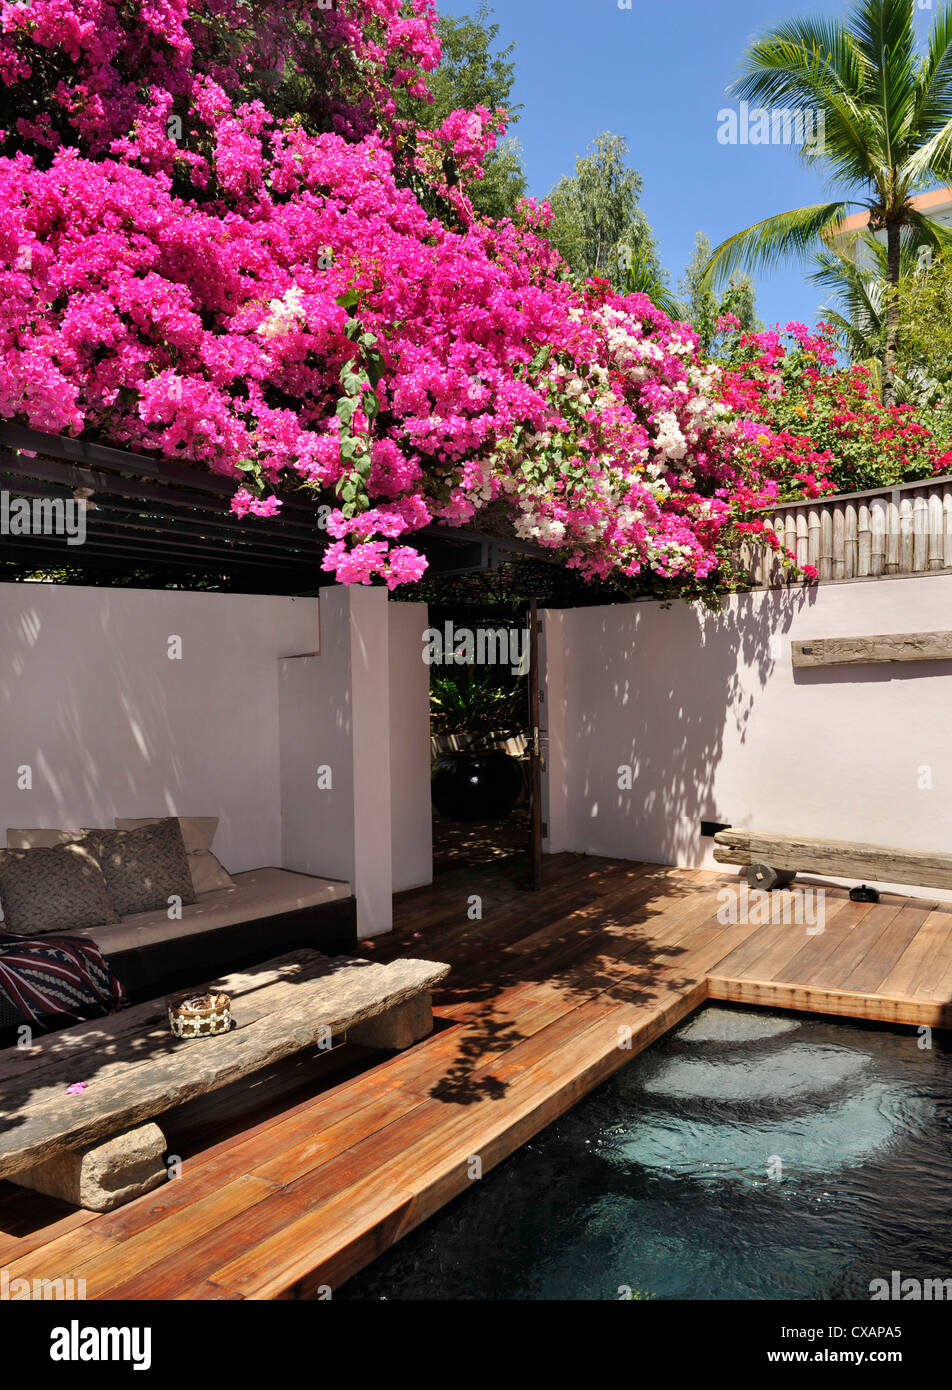 Bougainvillea, Cebu, Philippines, Southeast Asia, Asia - Stock Image